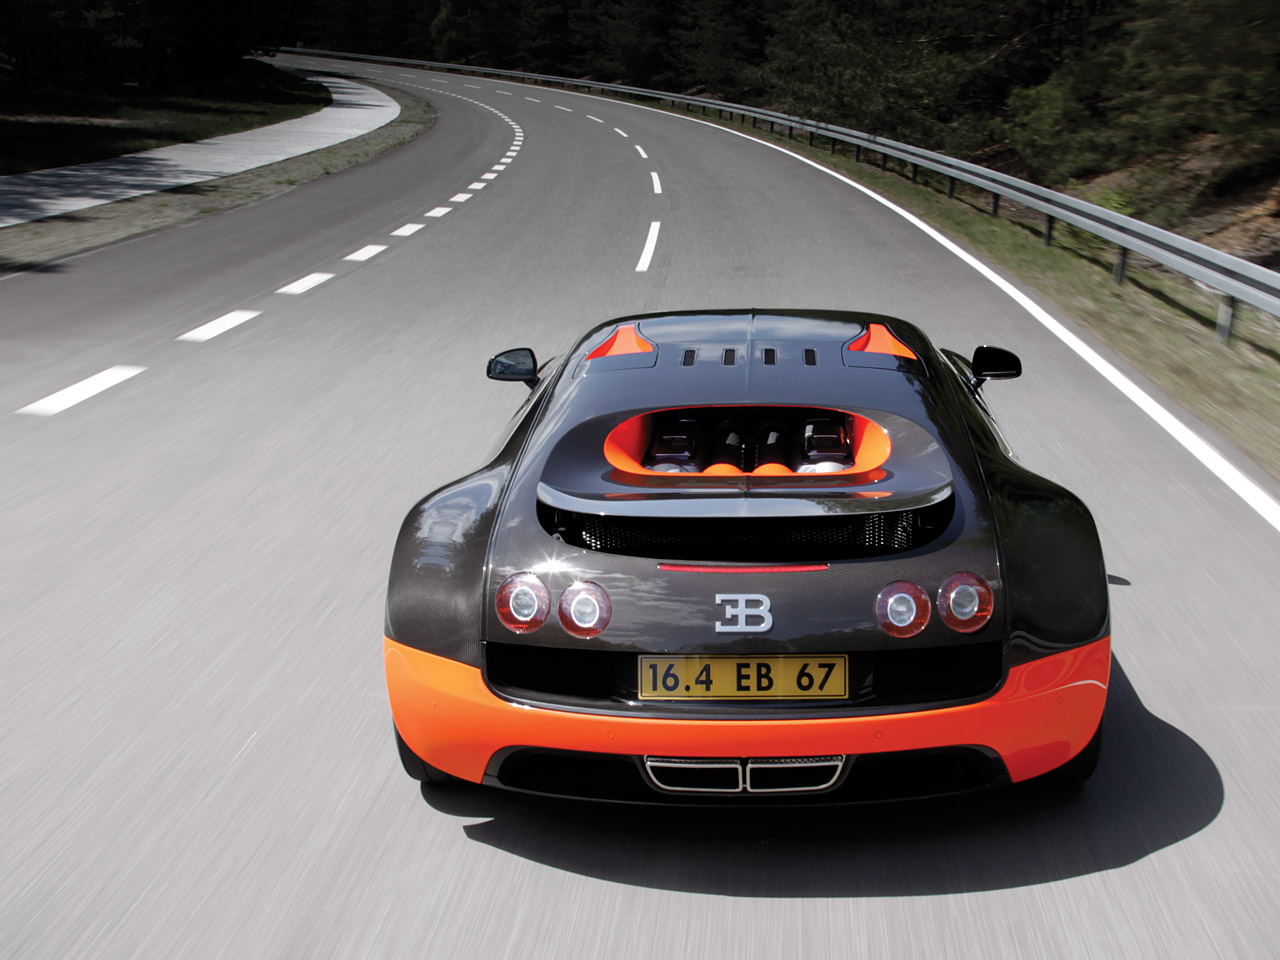 image gallery 2011 bugatti veyron. Black Bedroom Furniture Sets. Home Design Ideas